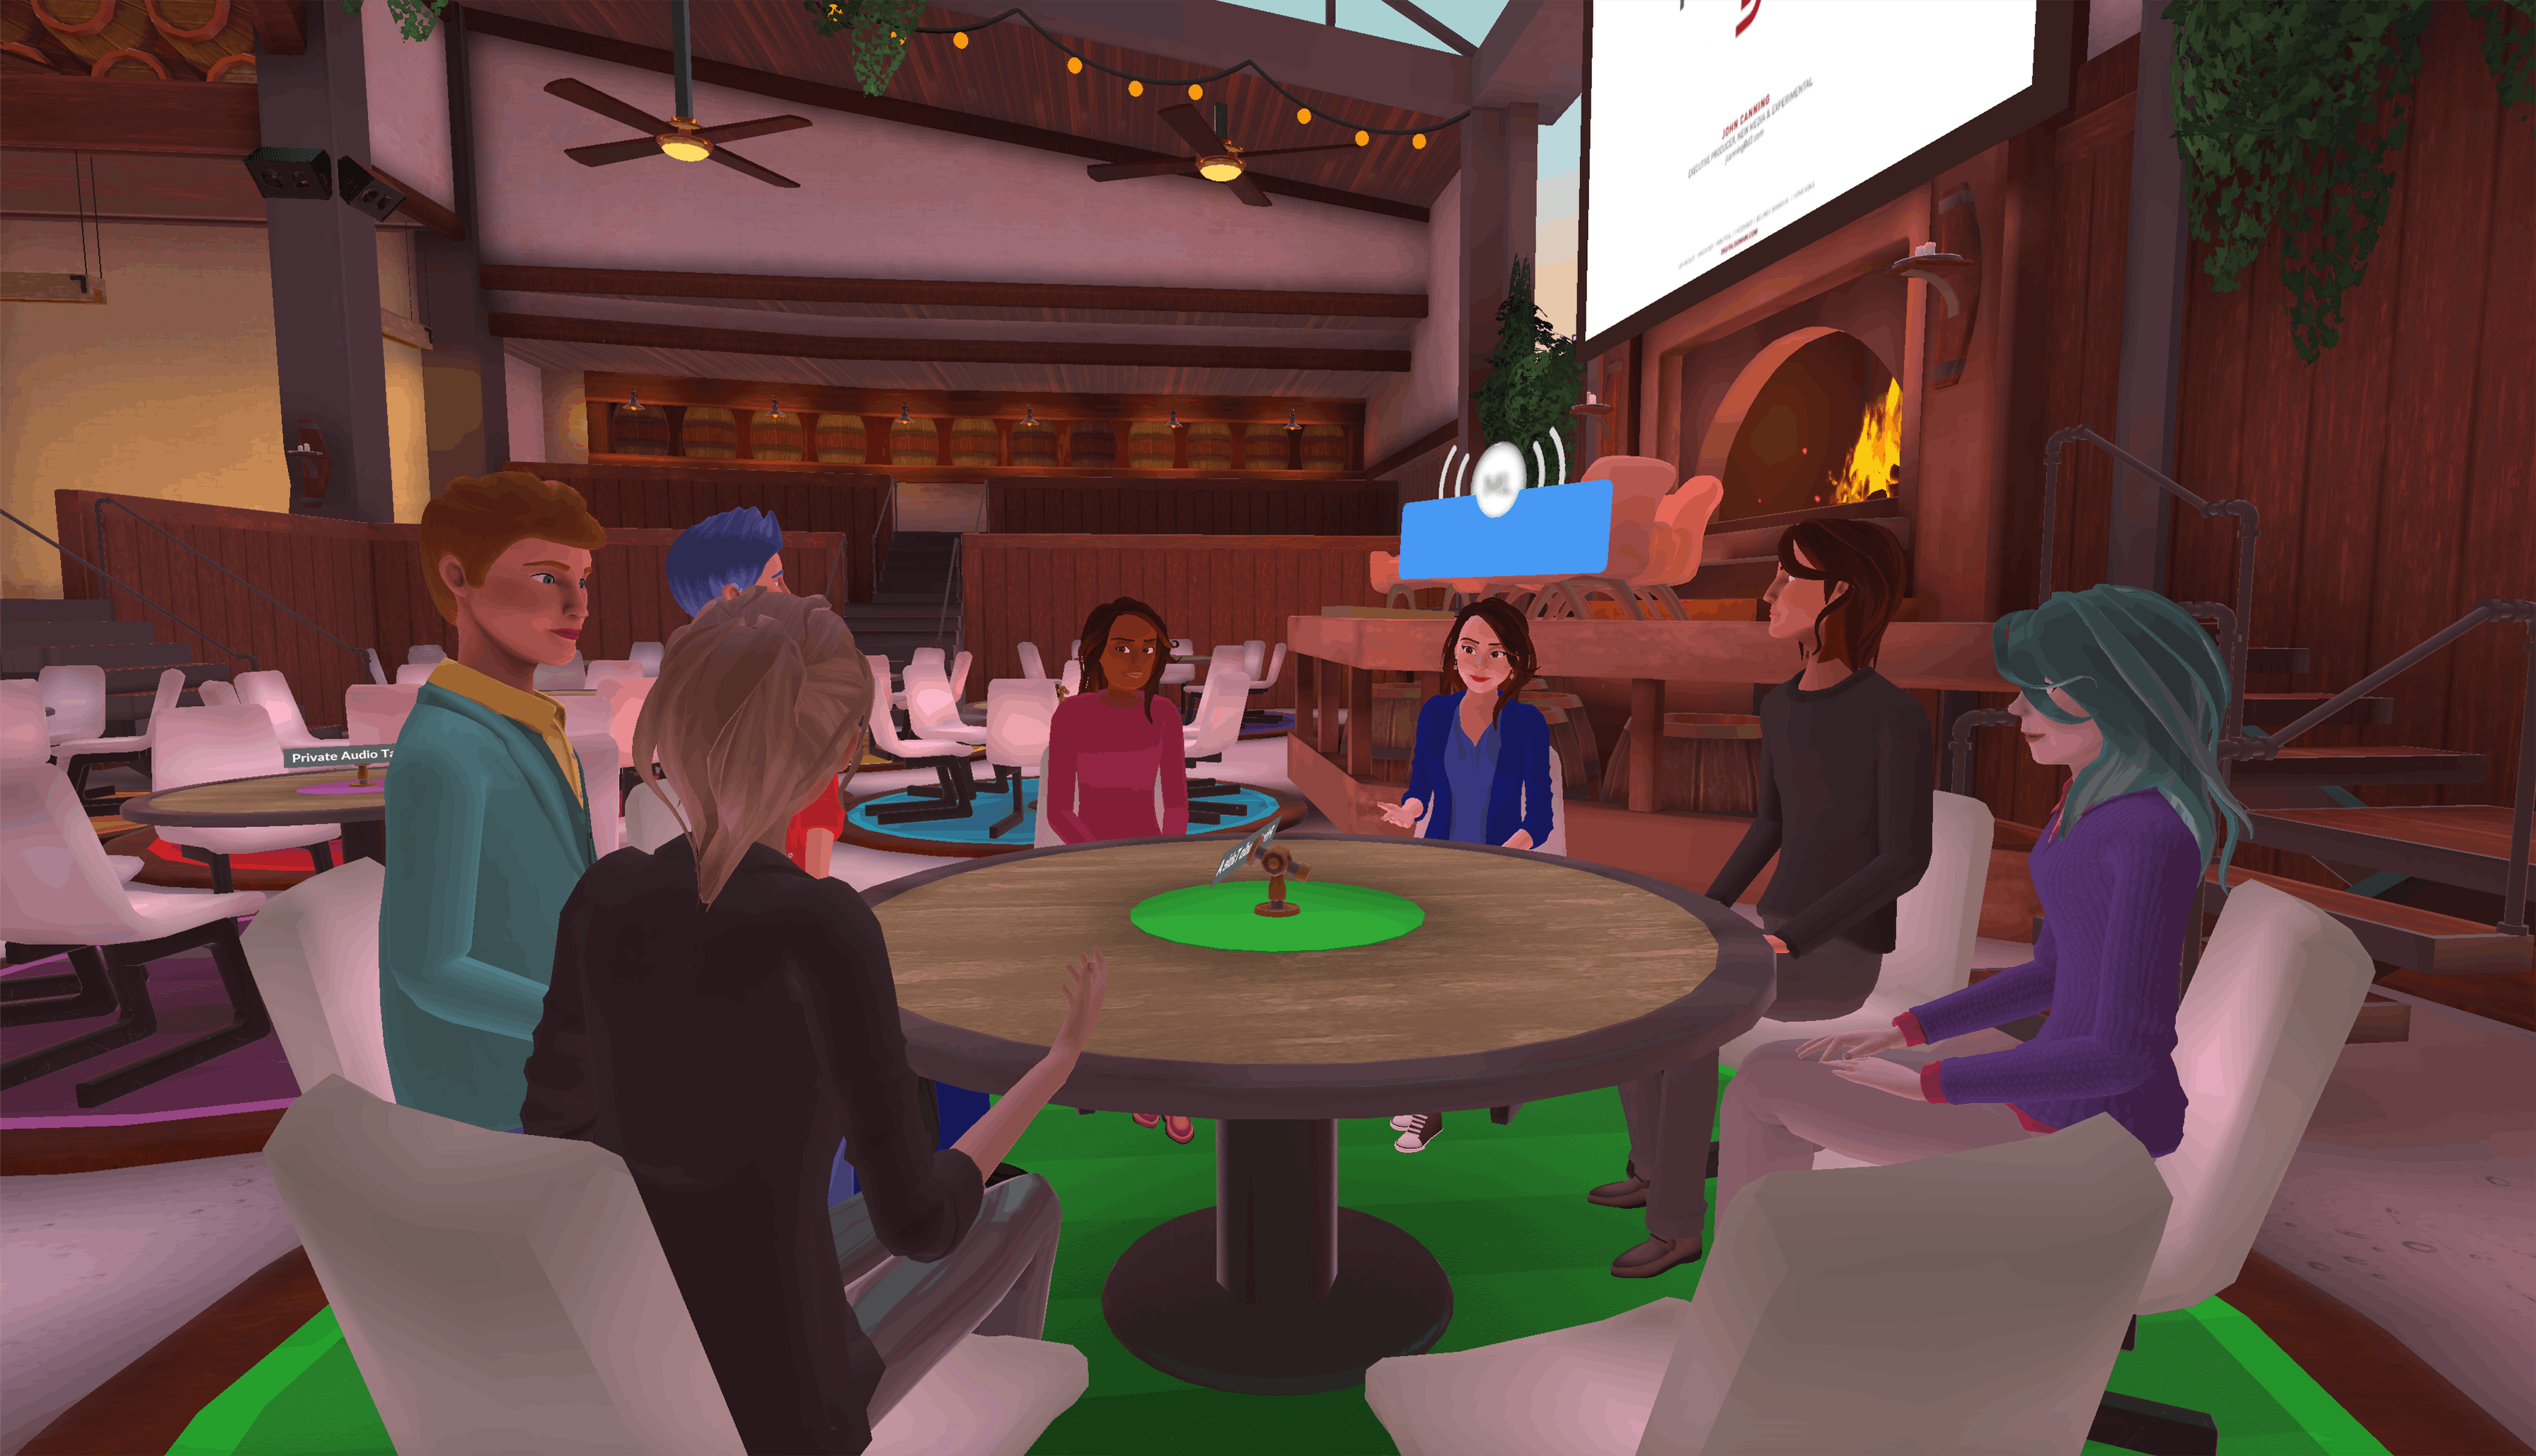 socialize and interact post-workshop in Teooh's avatar-based virtual reality platform